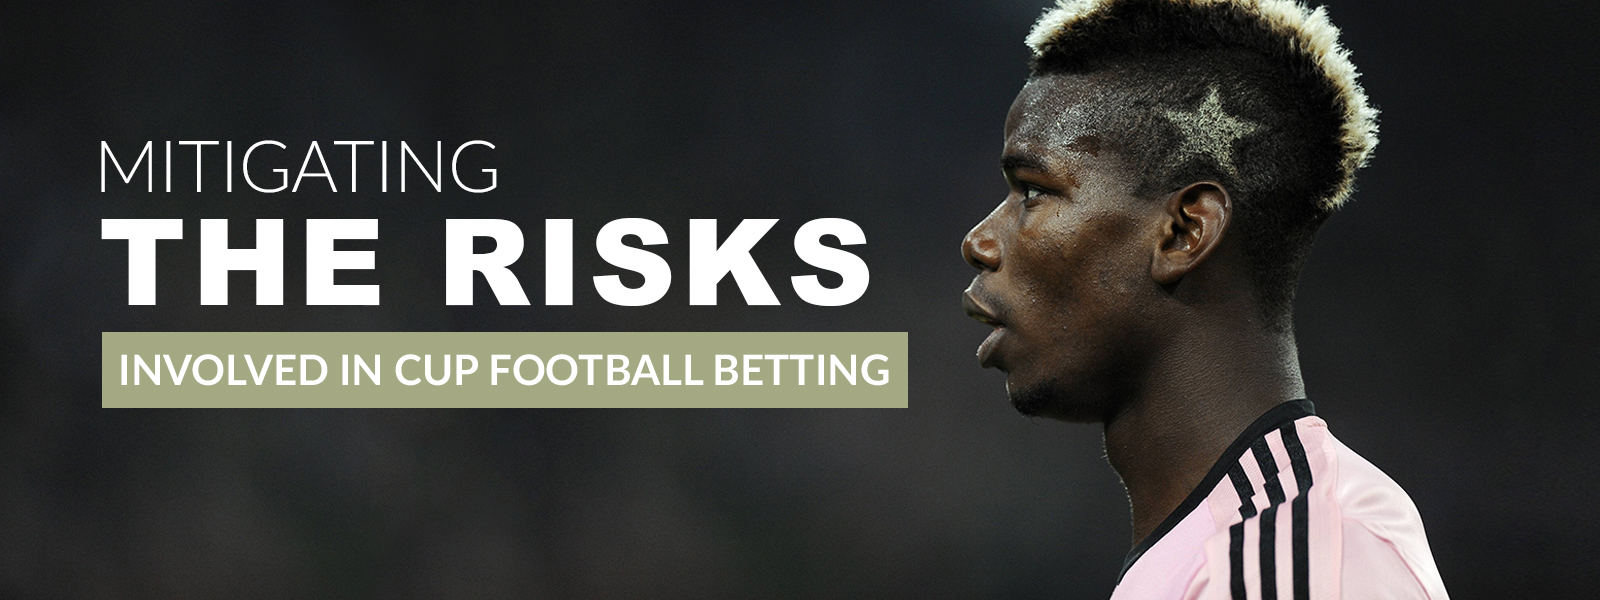 Mitigating The Risks Involved In Cup Football Betting